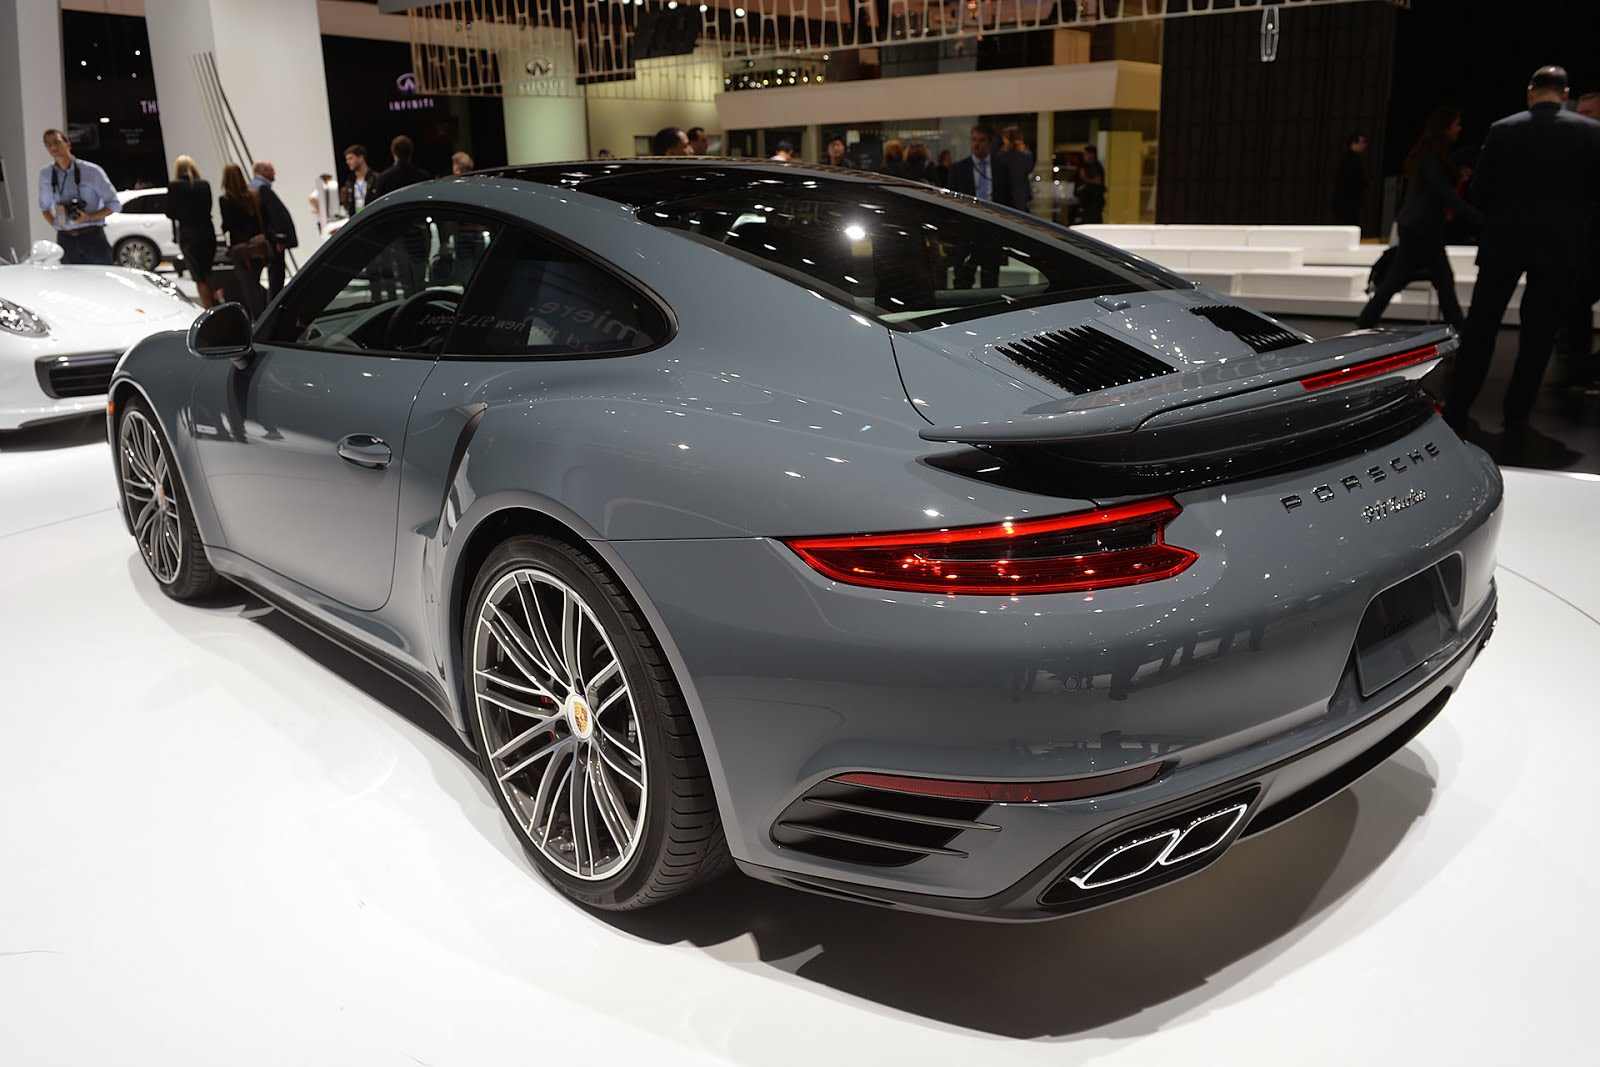 m e m o 2016 porsche turbo slate gray. Black Bedroom Furniture Sets. Home Design Ideas